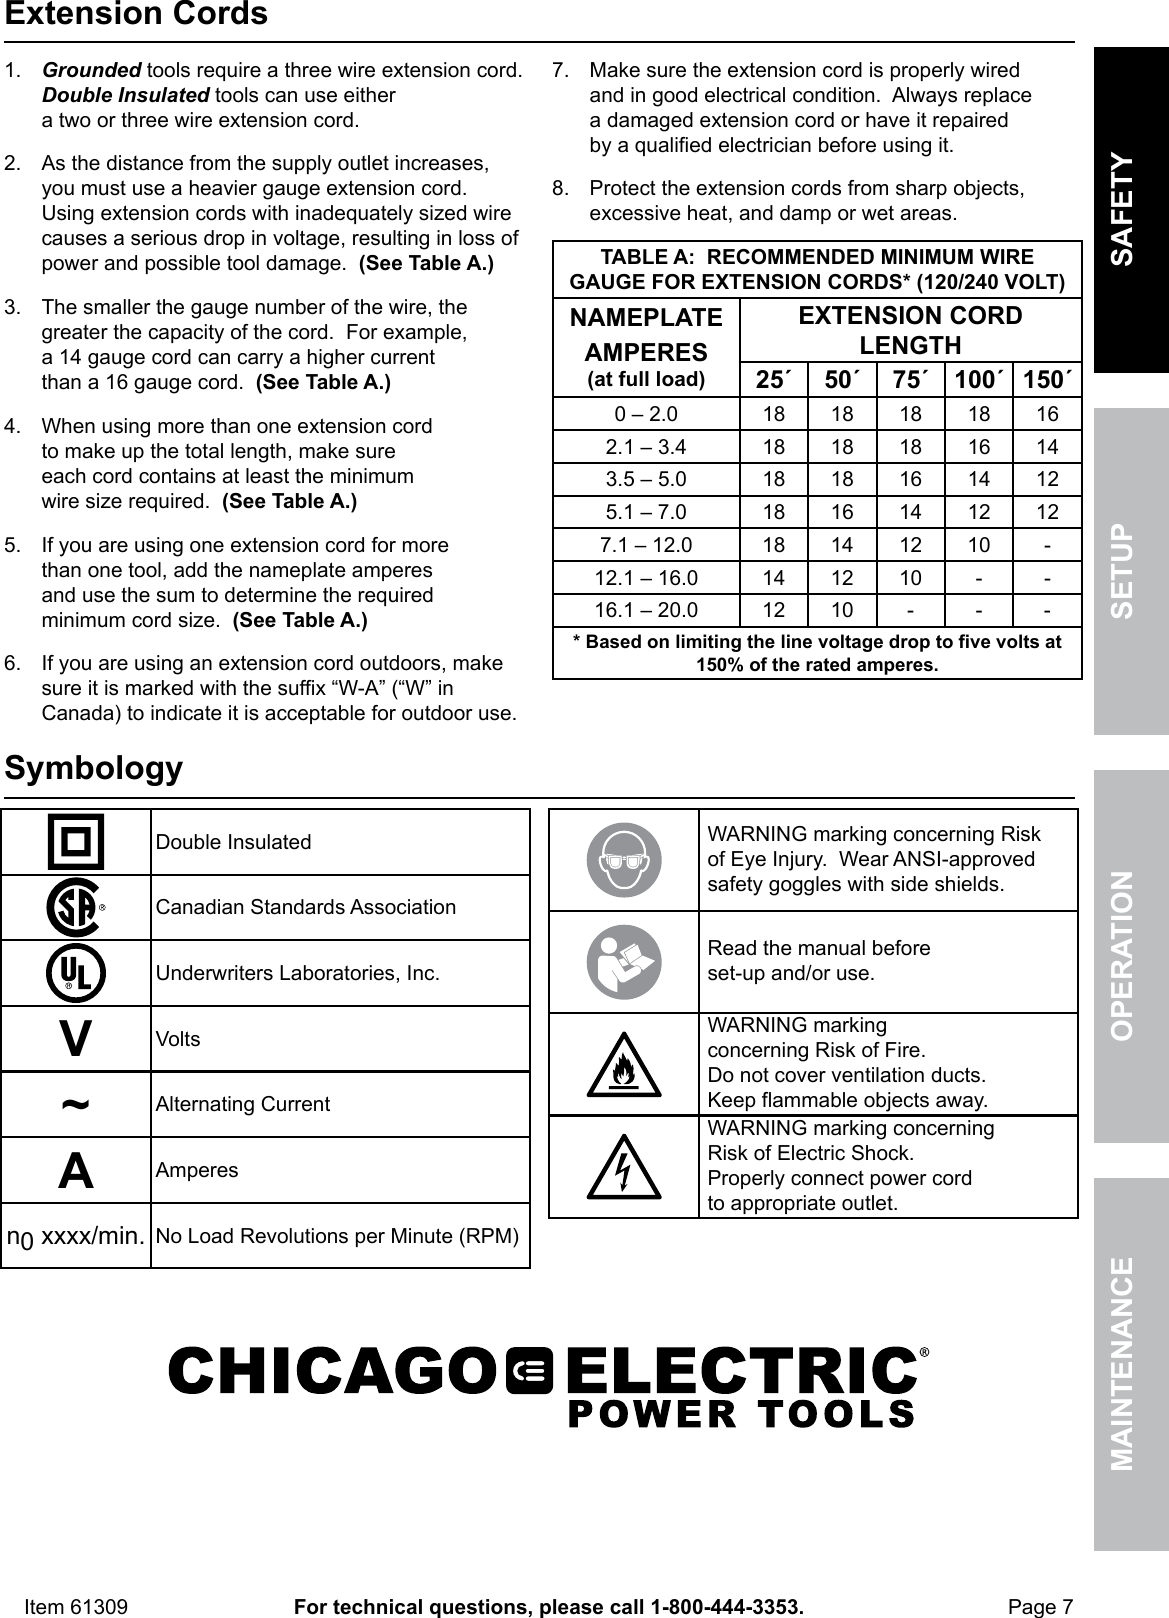 Awesome wire gauge table amperage photos diagram wiring ideas delighted wire gauge for amps contemporary wiring diagram ideas greentooth Choice Image